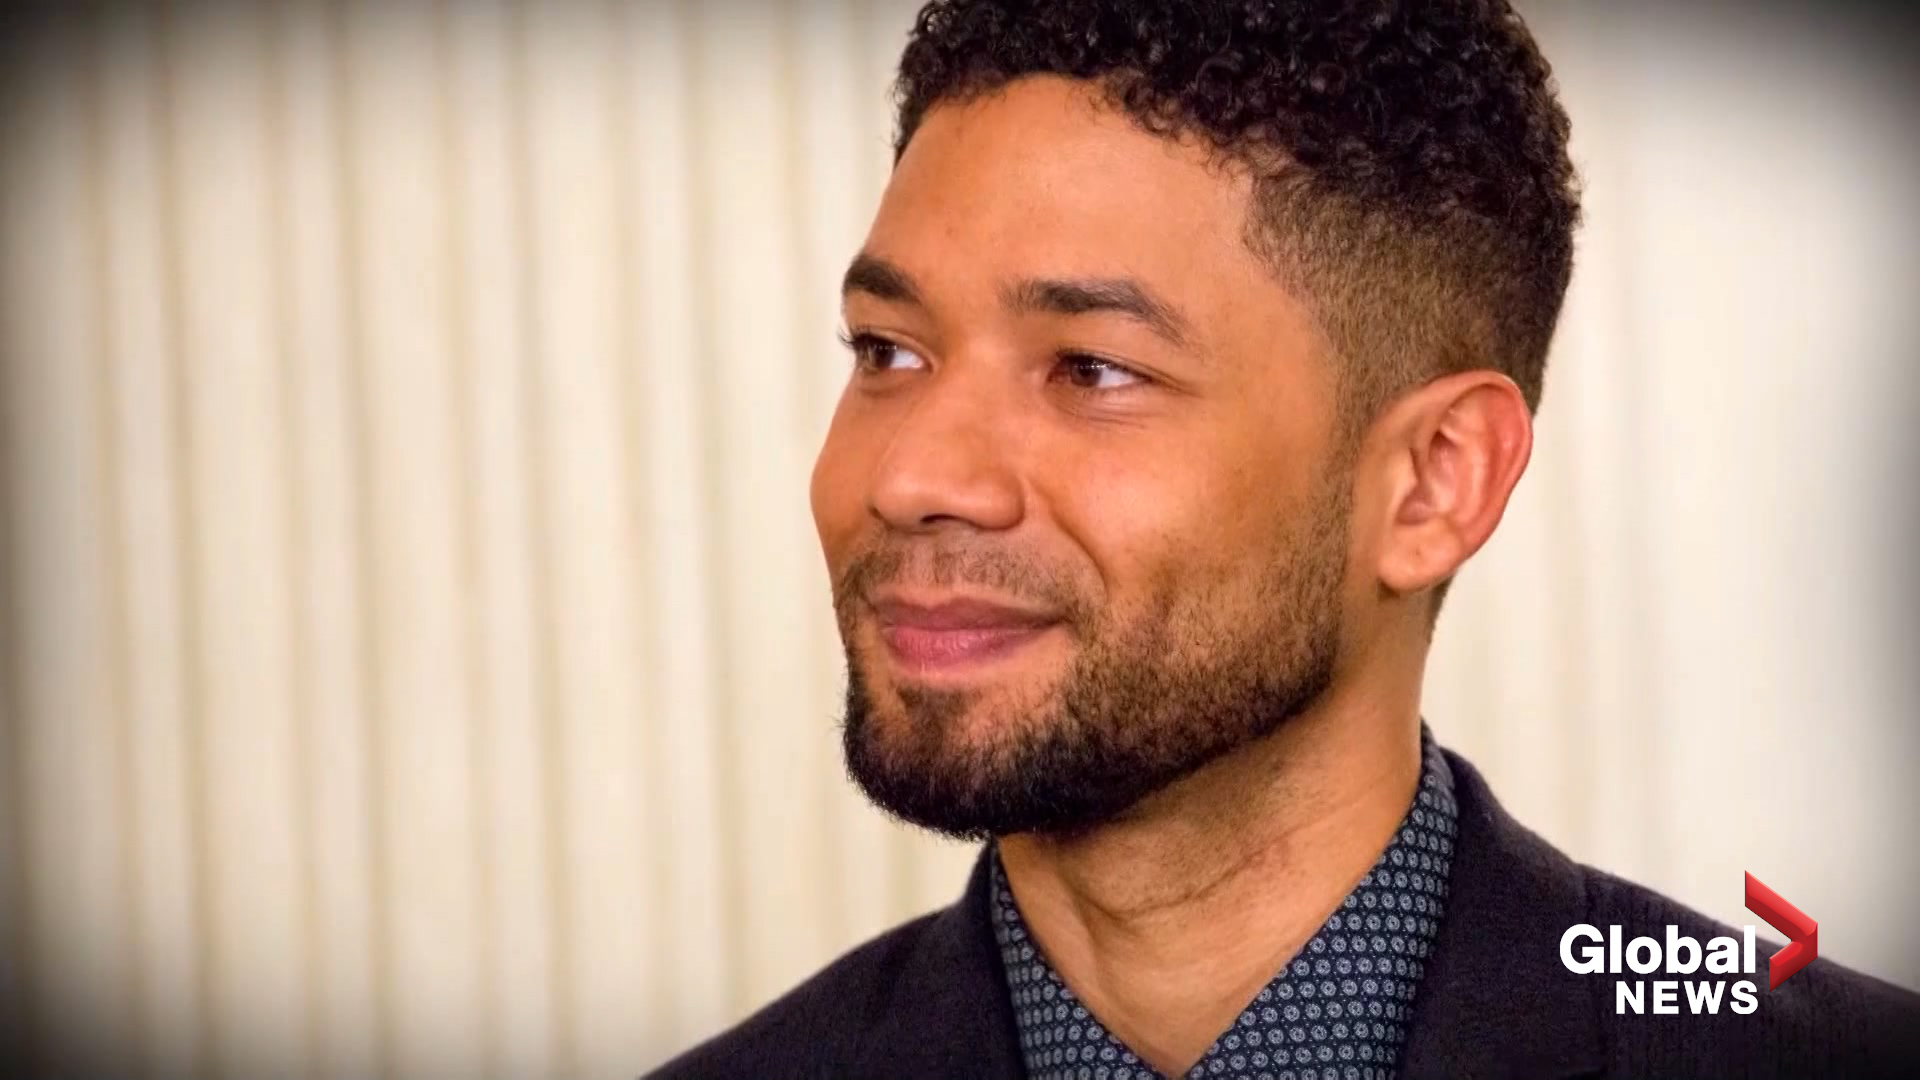 What's come out about Jussie Smollett's attack